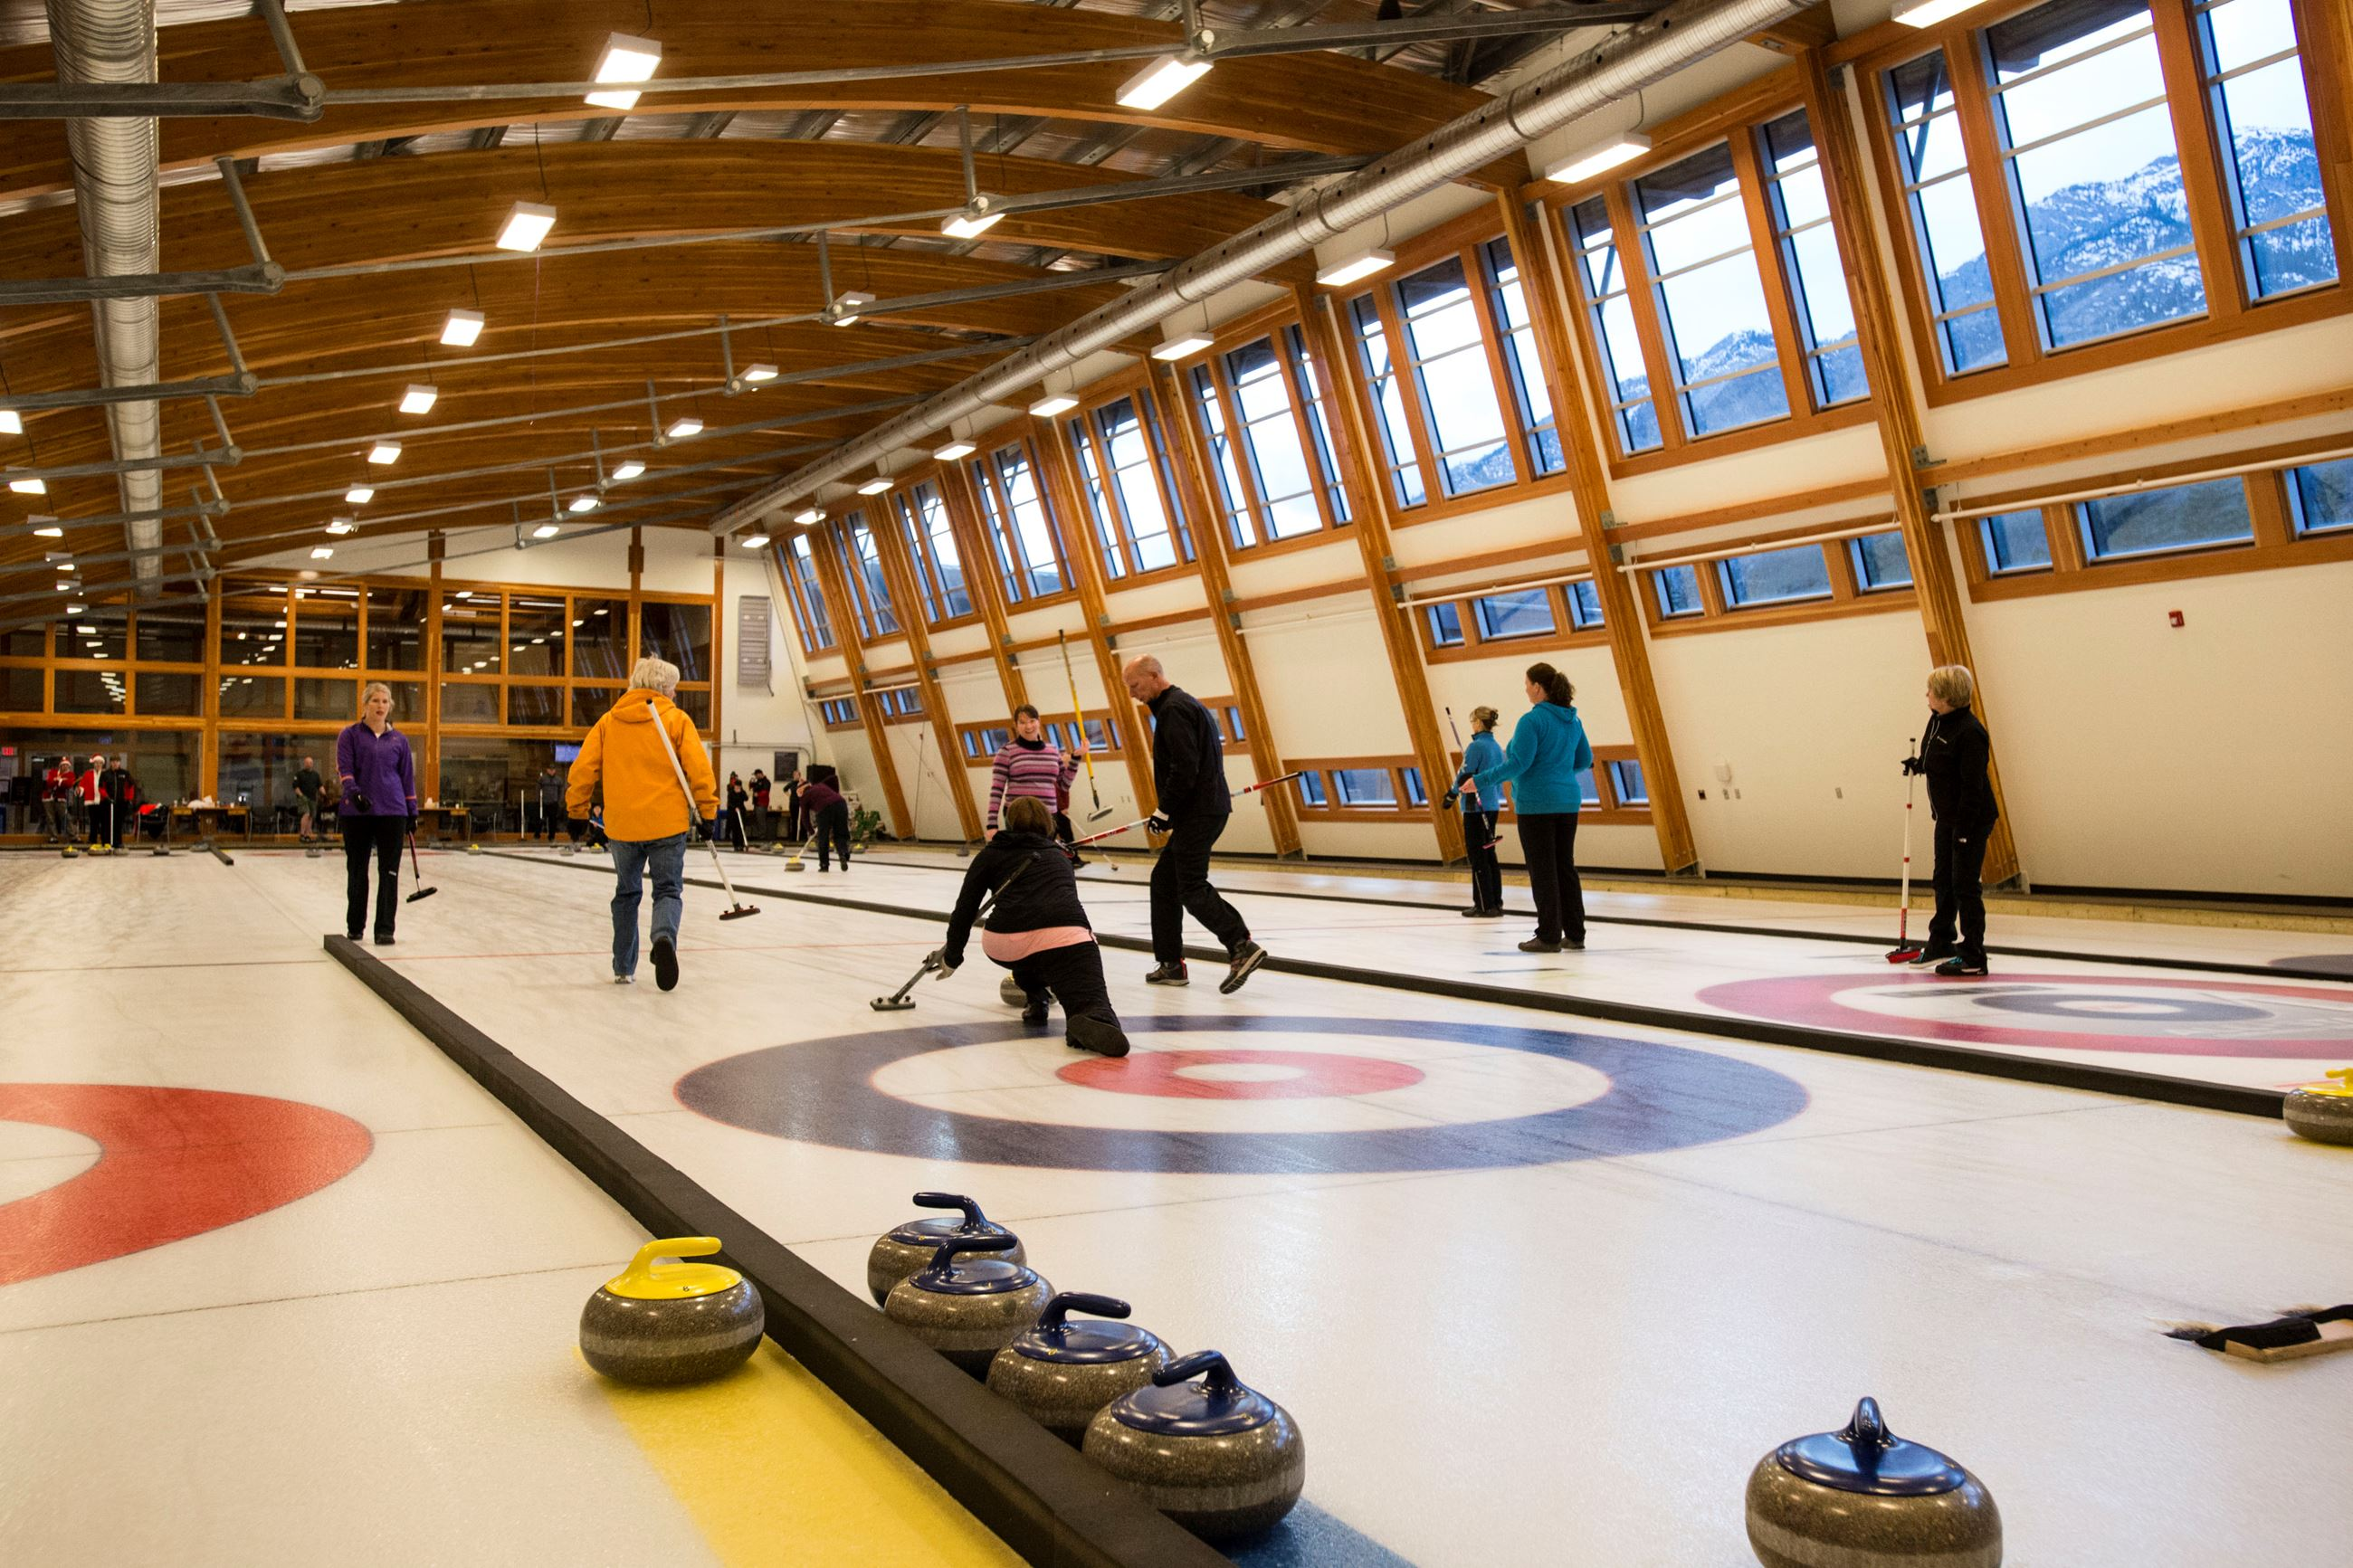 Curling at The Fenlands